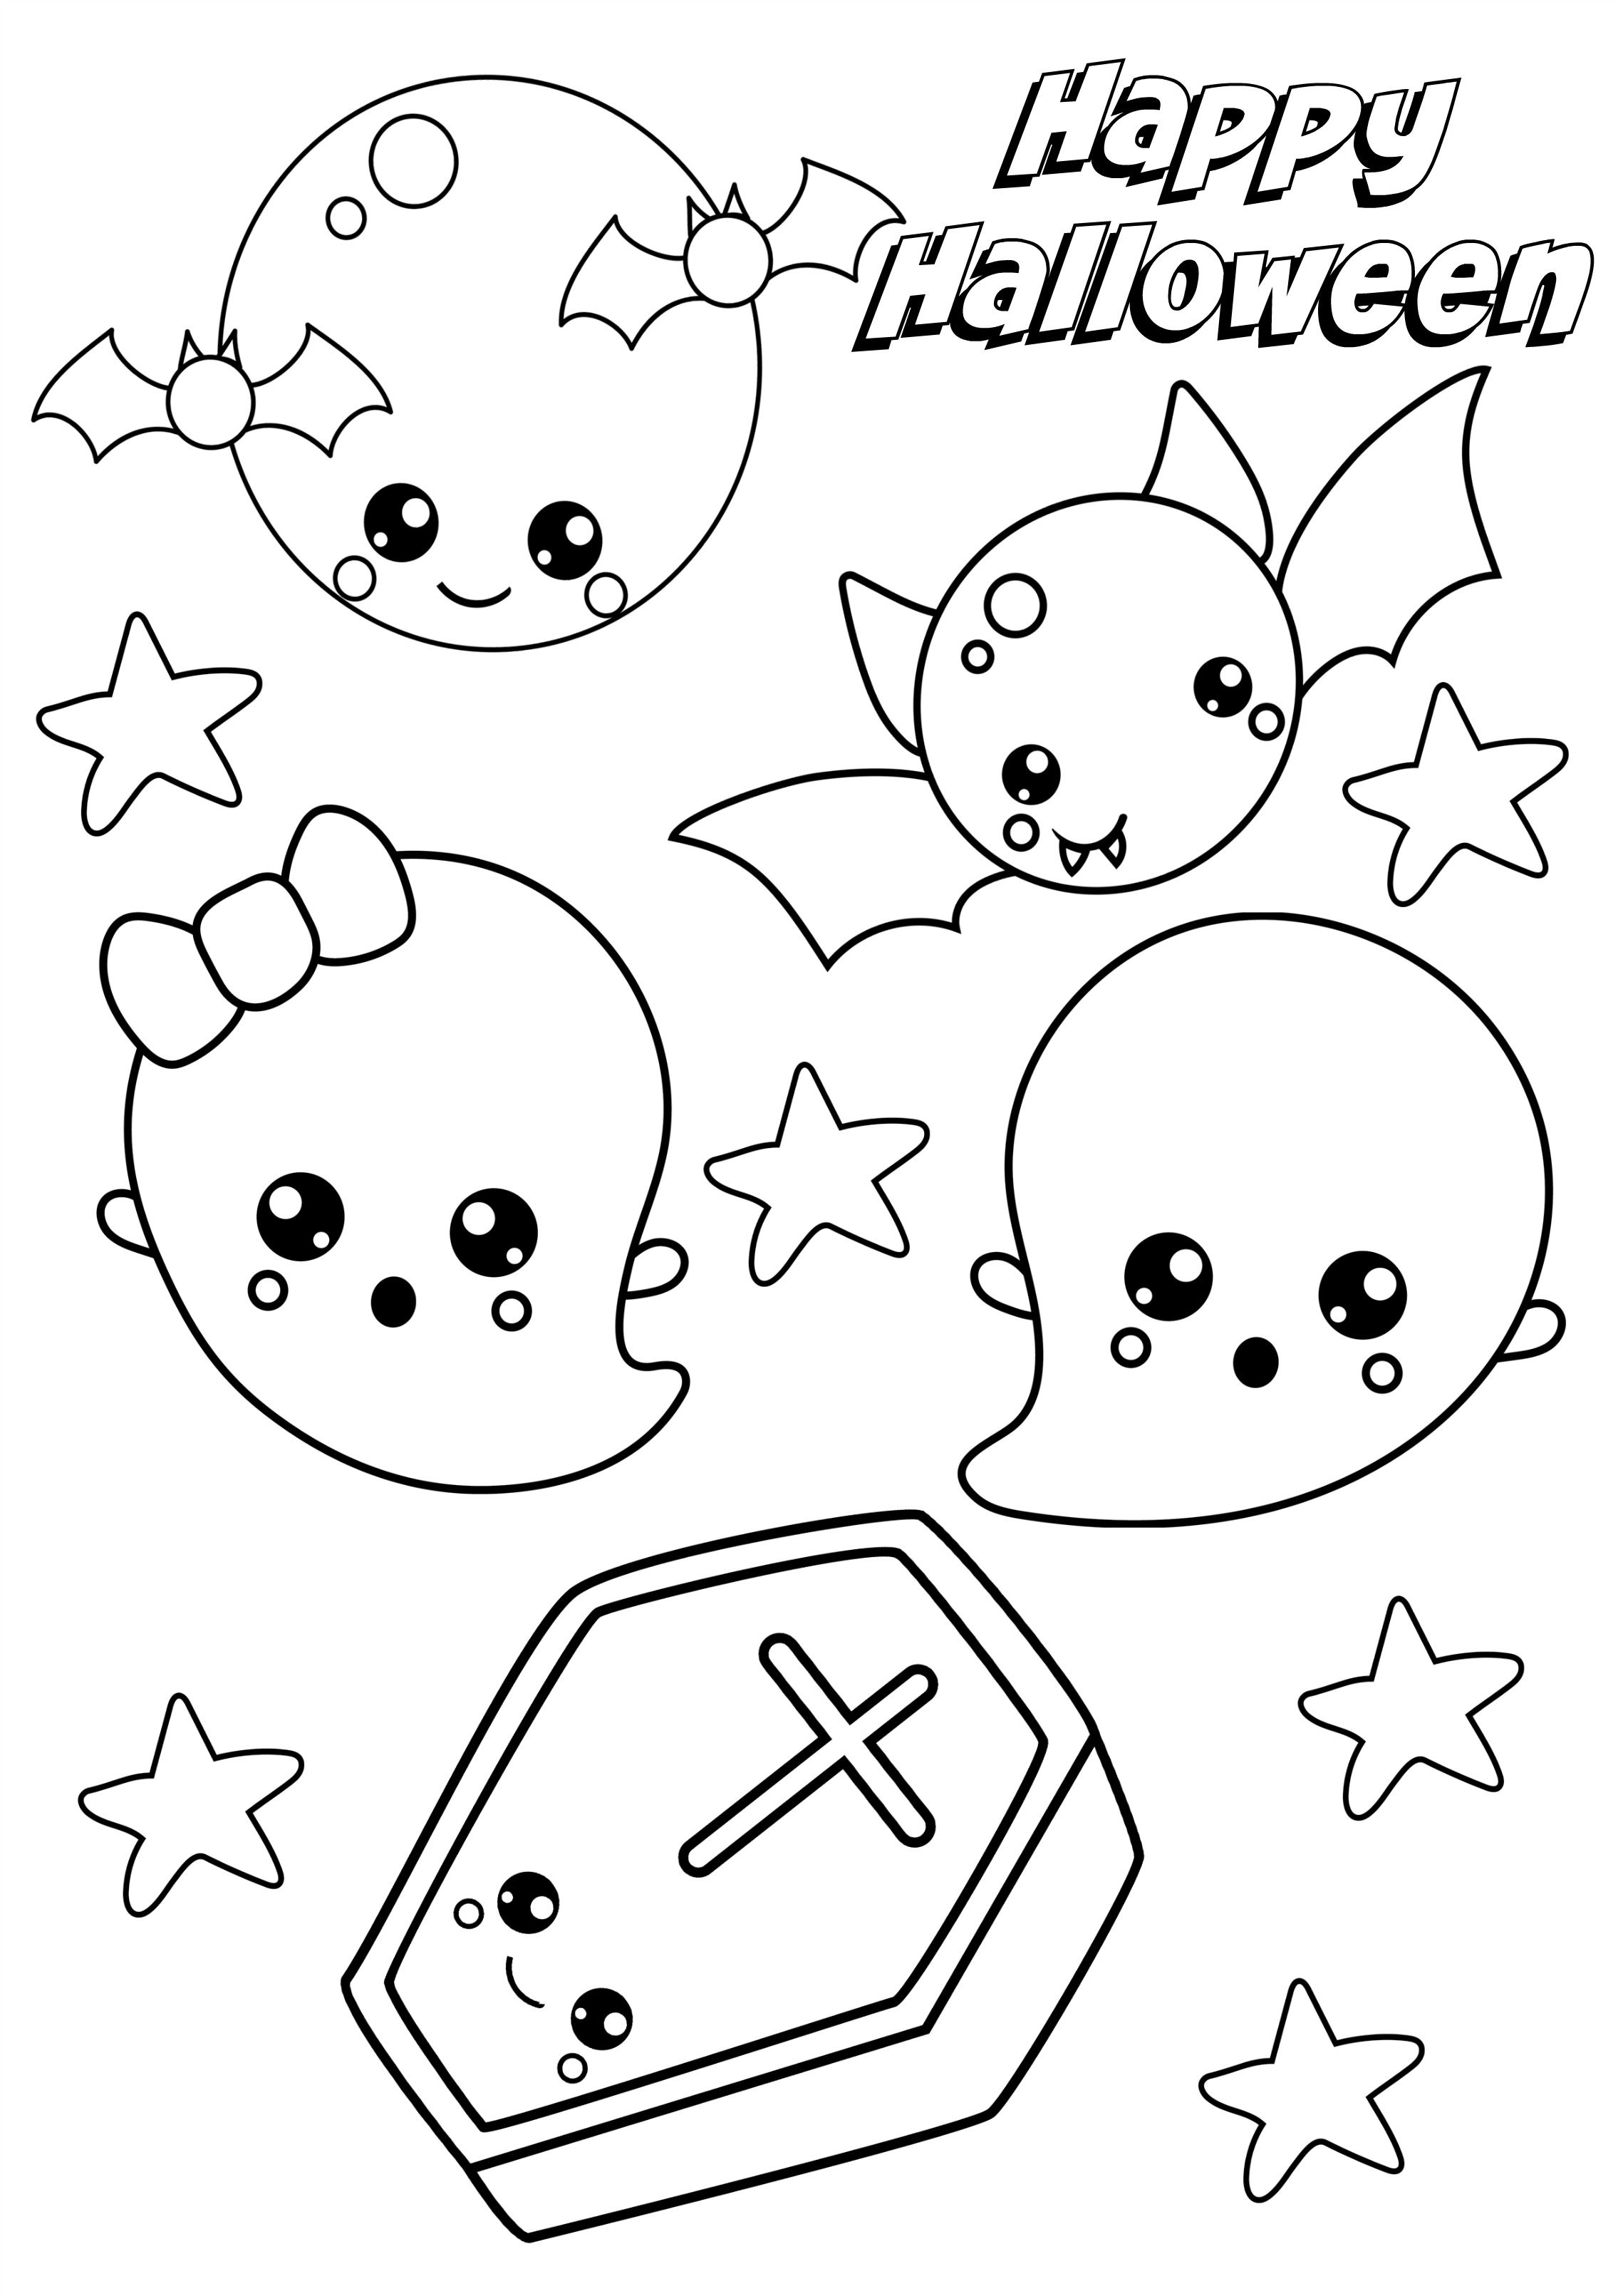 Colouring In 1 Jpg 2278 3222 Cute Coloring Pages Halloween Drawings Halloween Coloring Pages